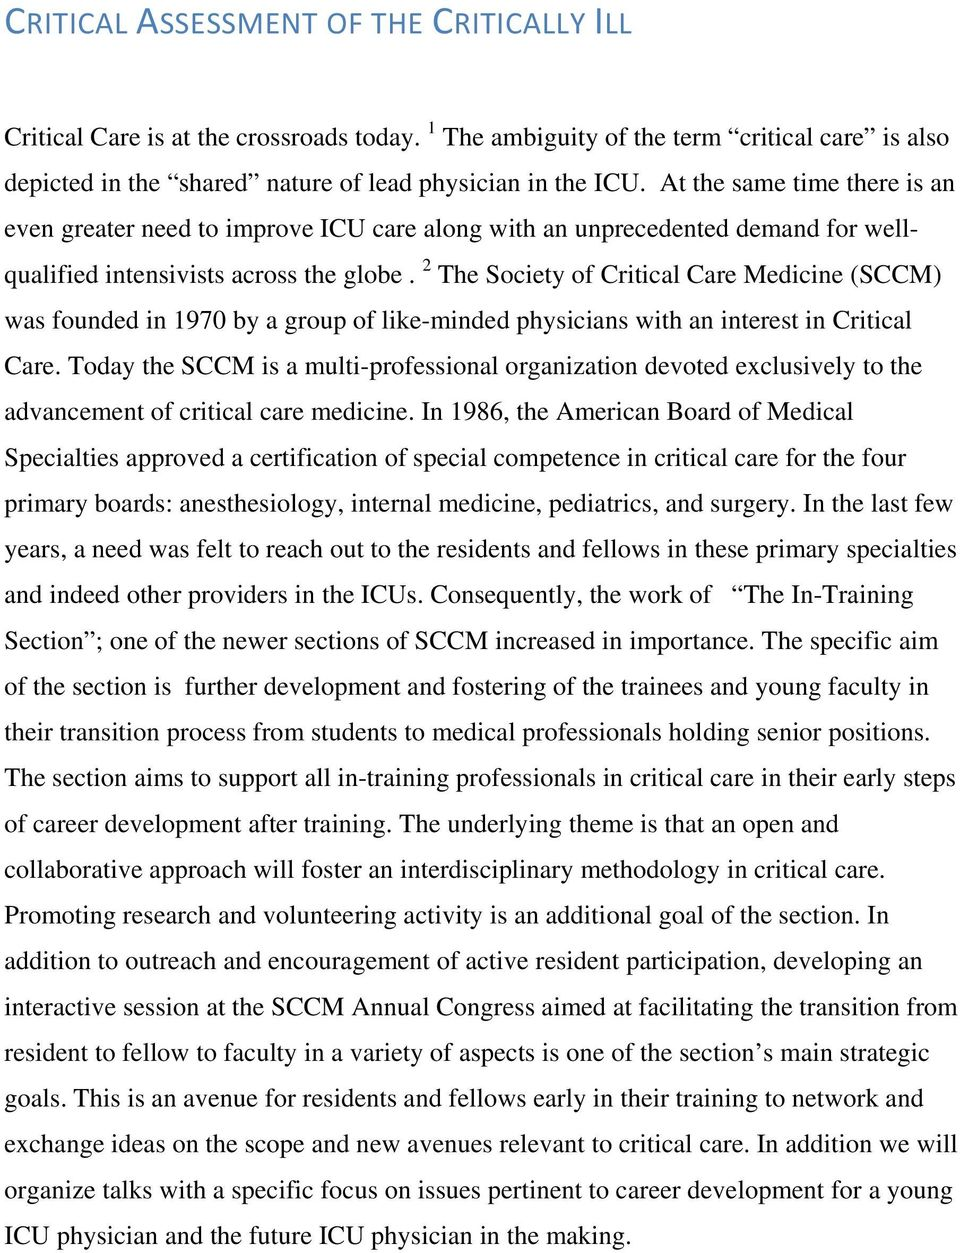 CRITICAL ASSESSMENT OF THE CRITICALLY ILL - PDF